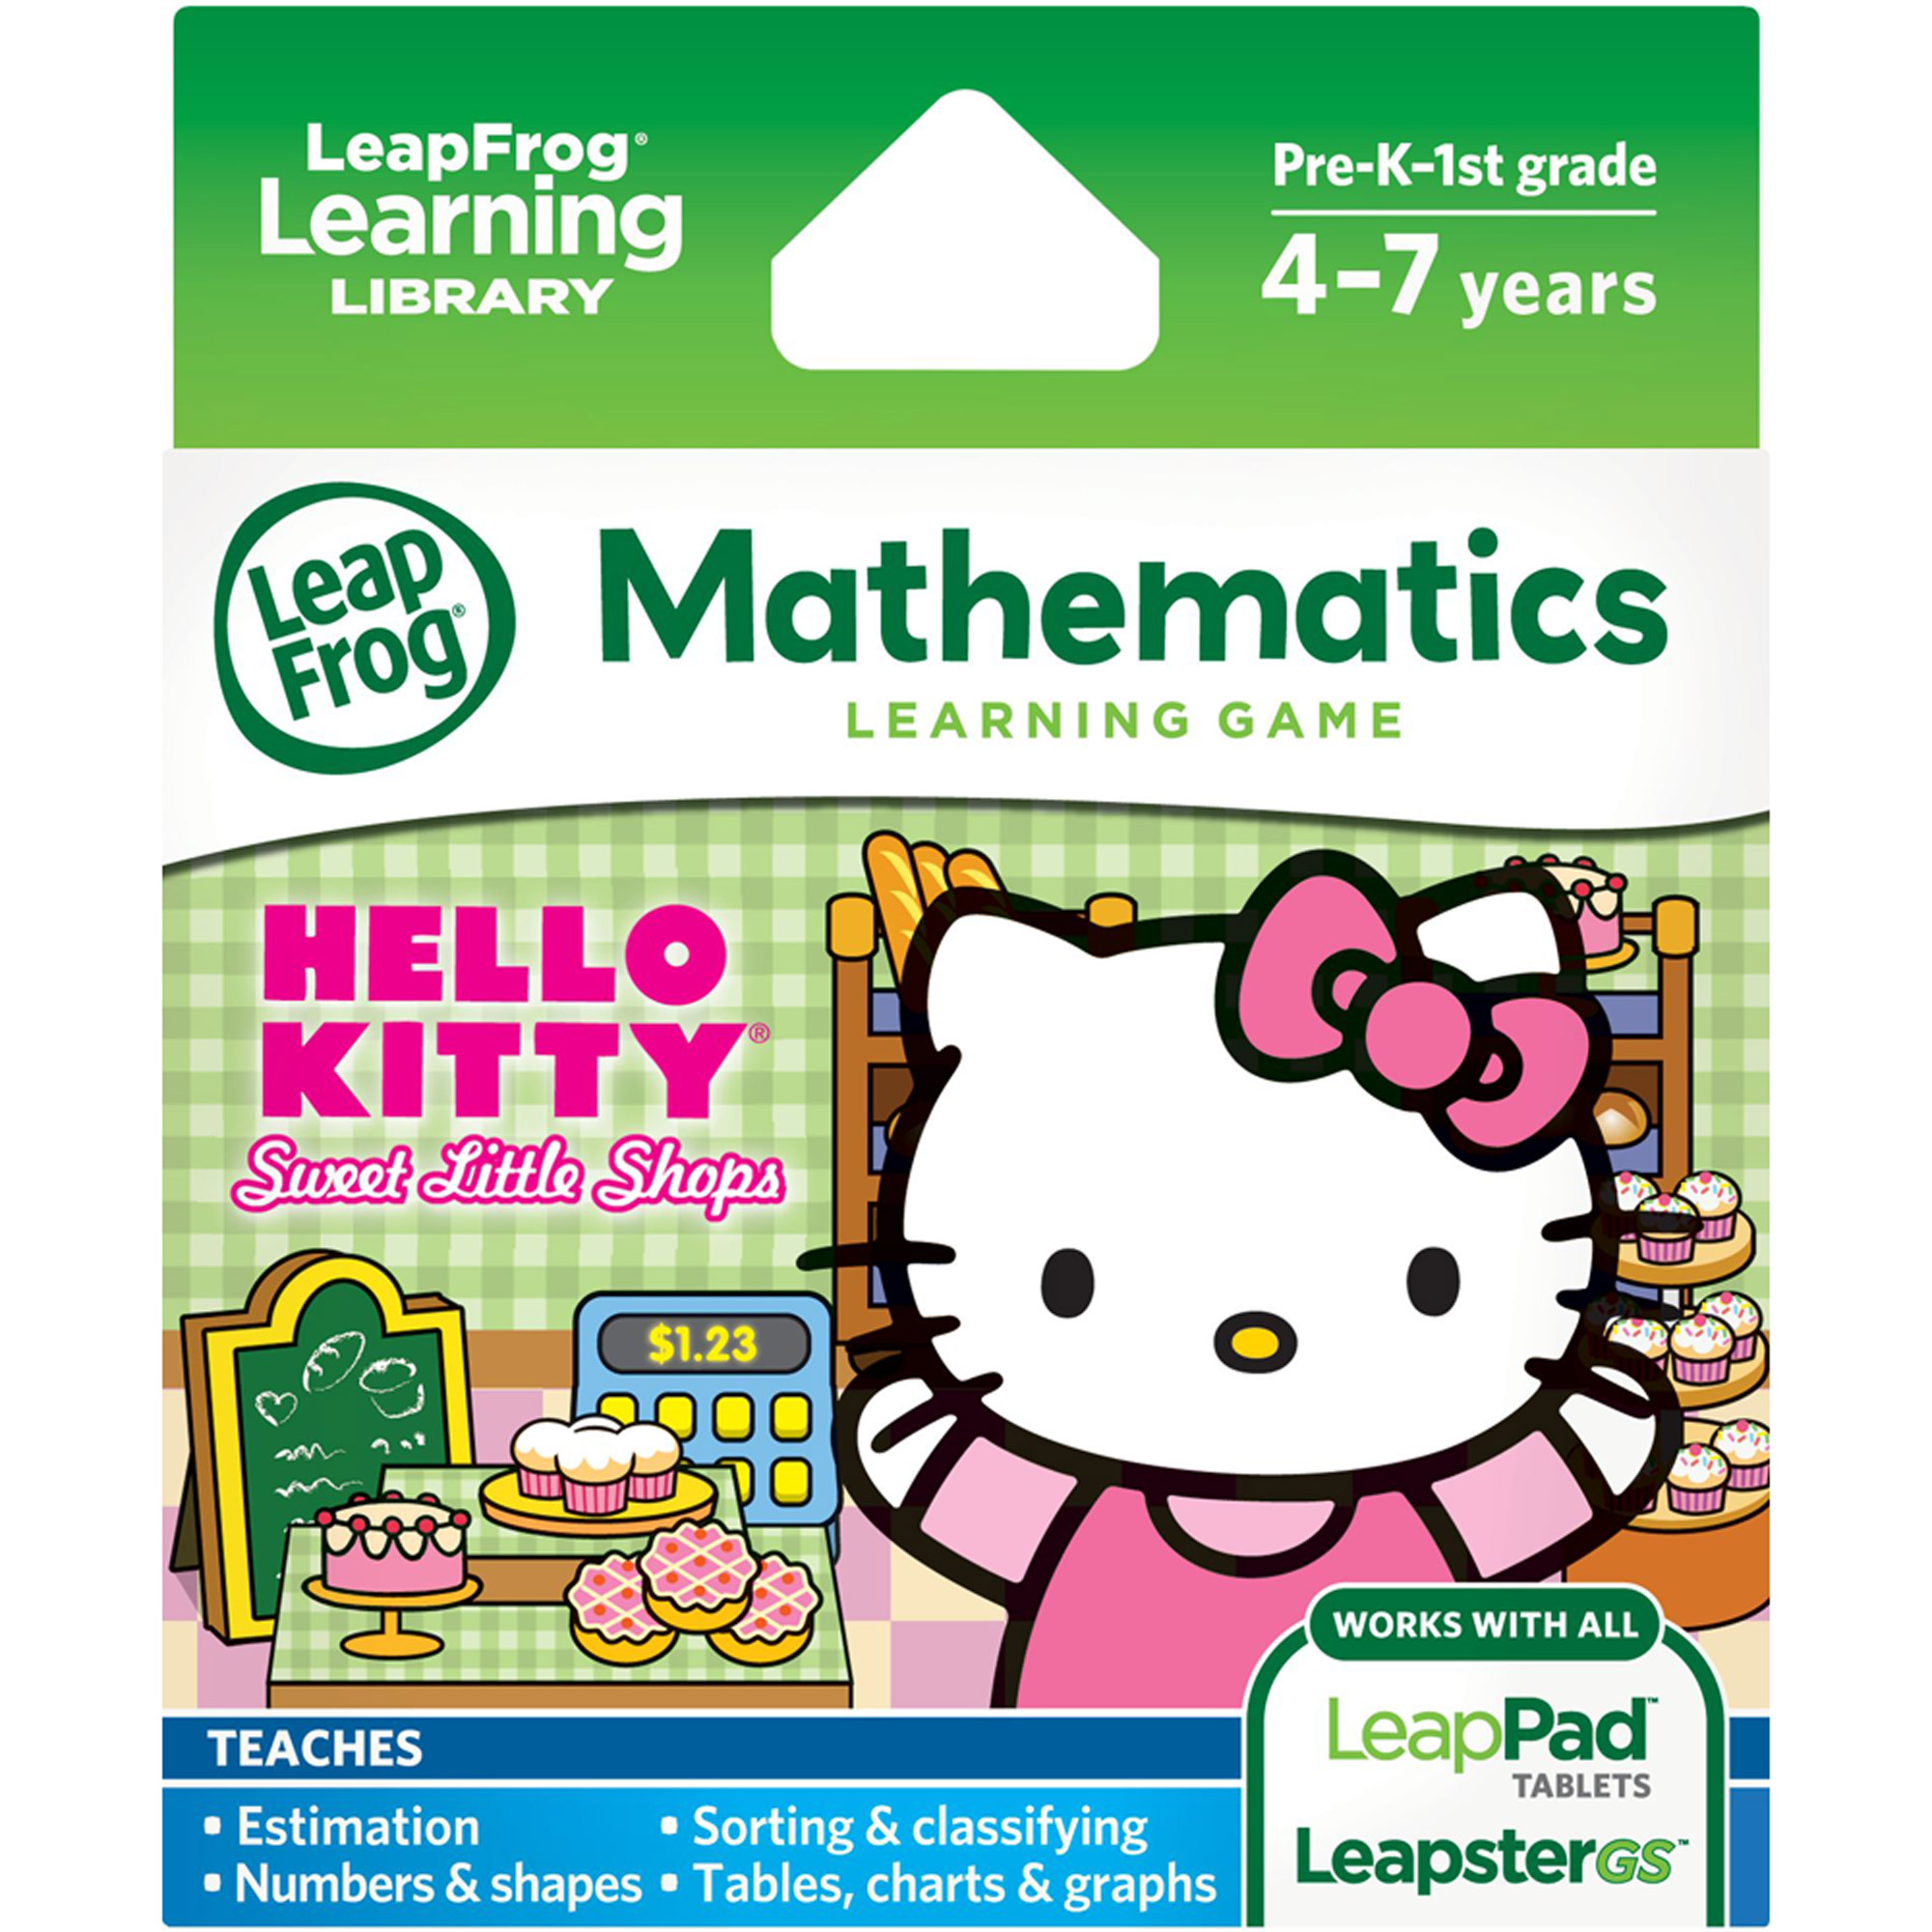 LeapFrog Explorer Learning Game, Sanrio Hello Kitty Sweet Little Shops